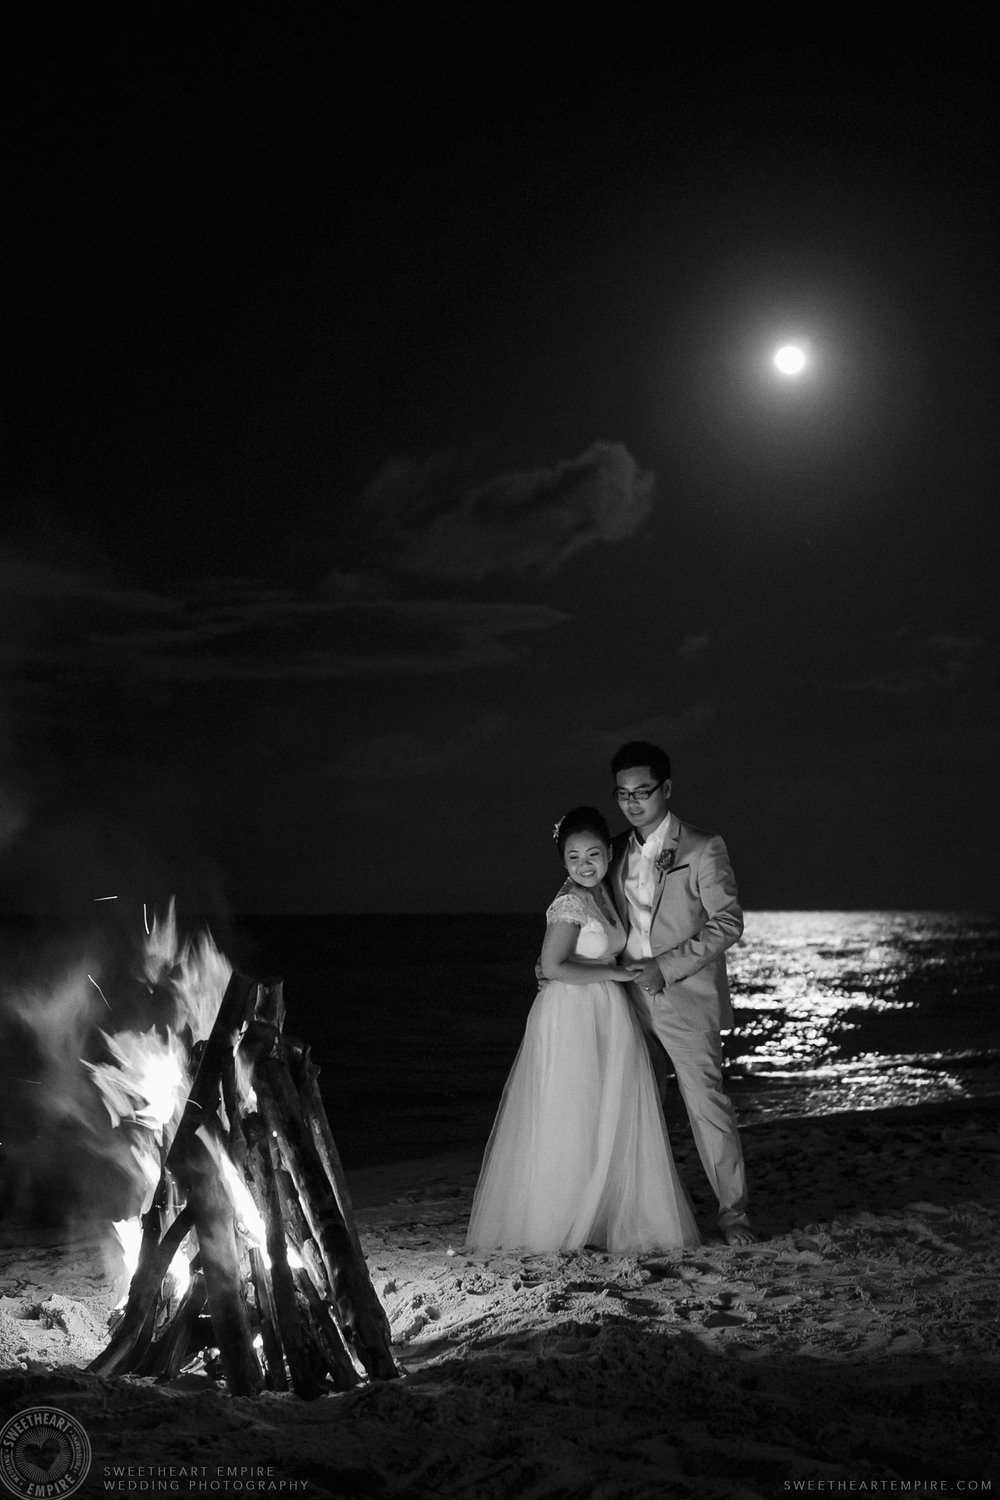 35_Bride and groom on the beach at night under the full moon.jpg